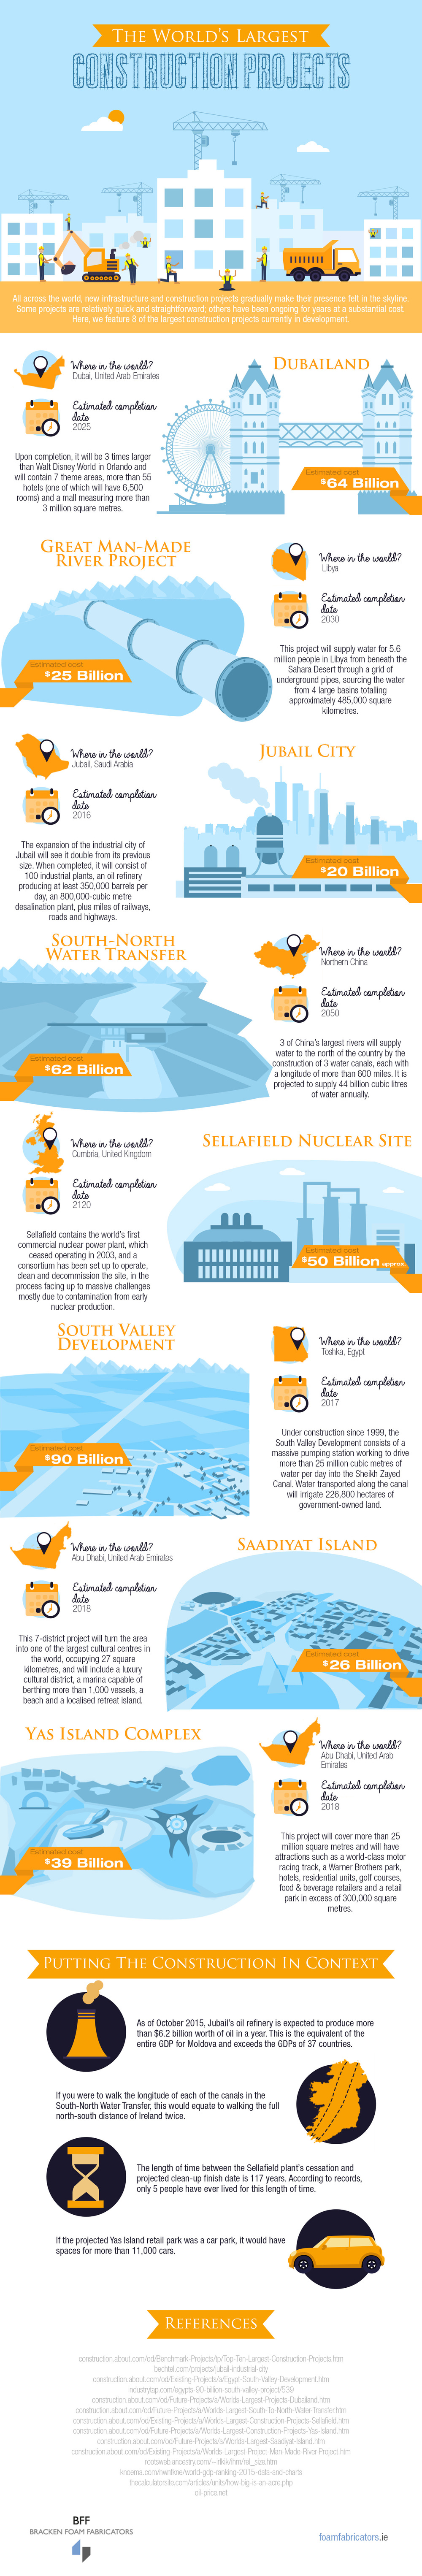 worlds largest construction projects infographic